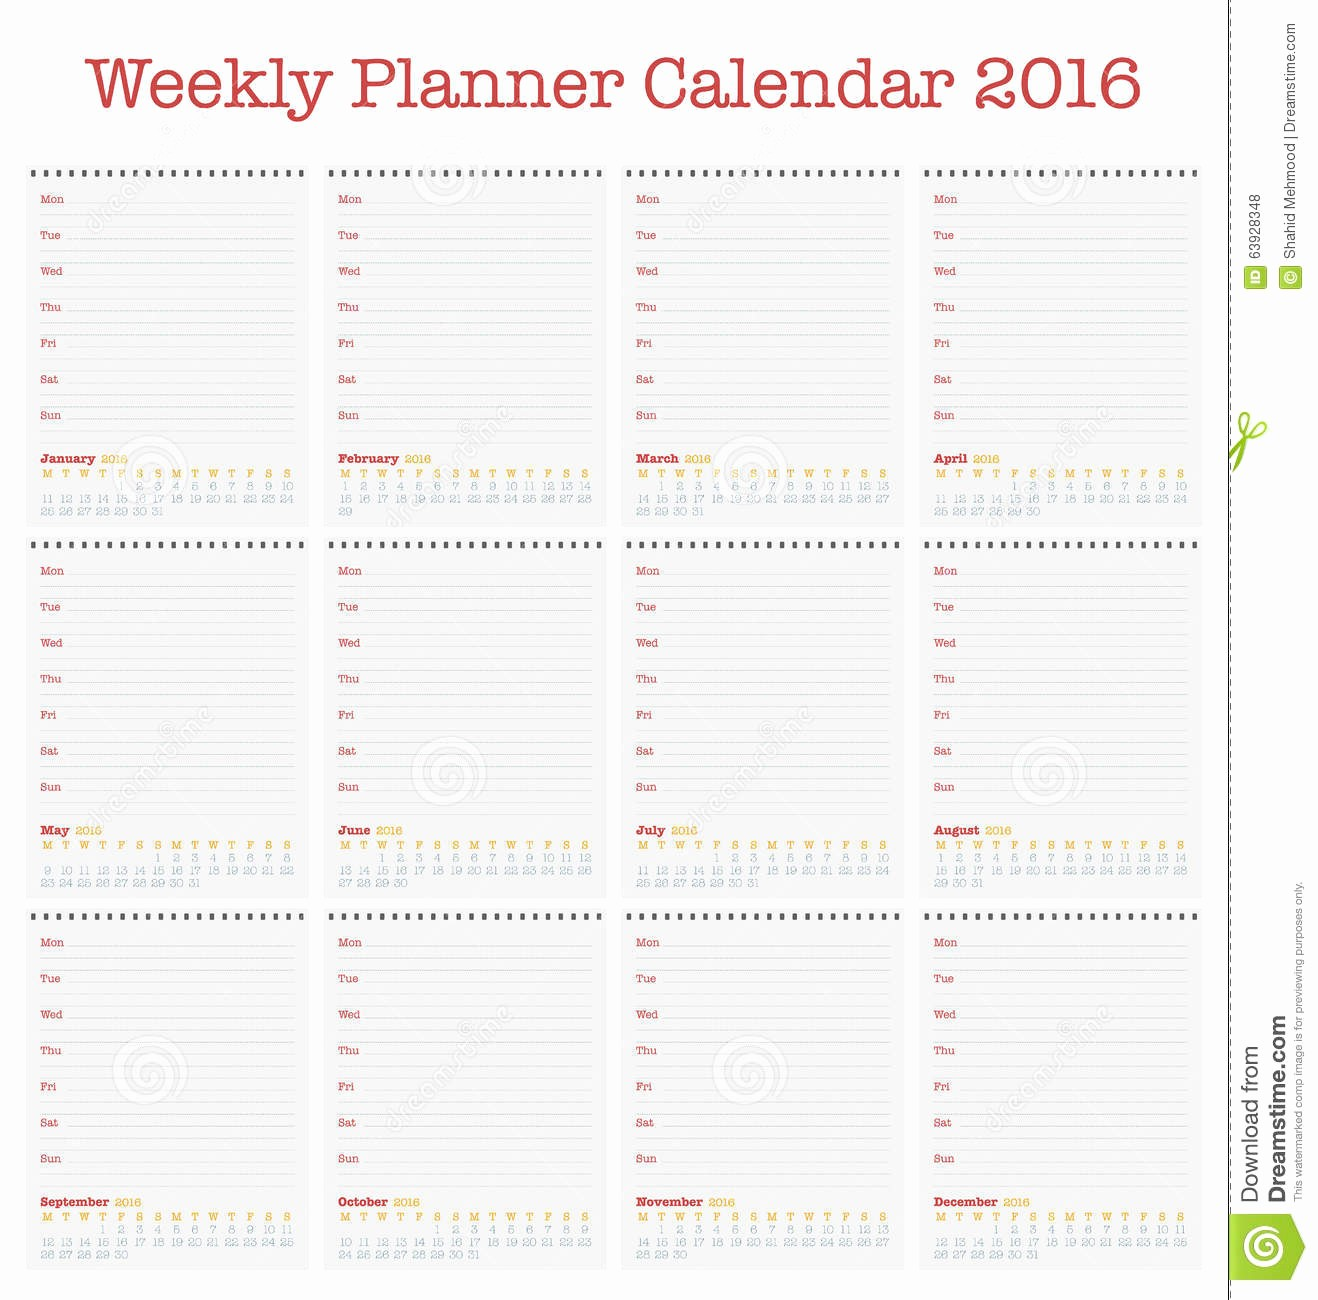 Weekly Calendar Starting with Monday Inspirational Calendar for 2016 Weekly Planner for Year 2016 Stock